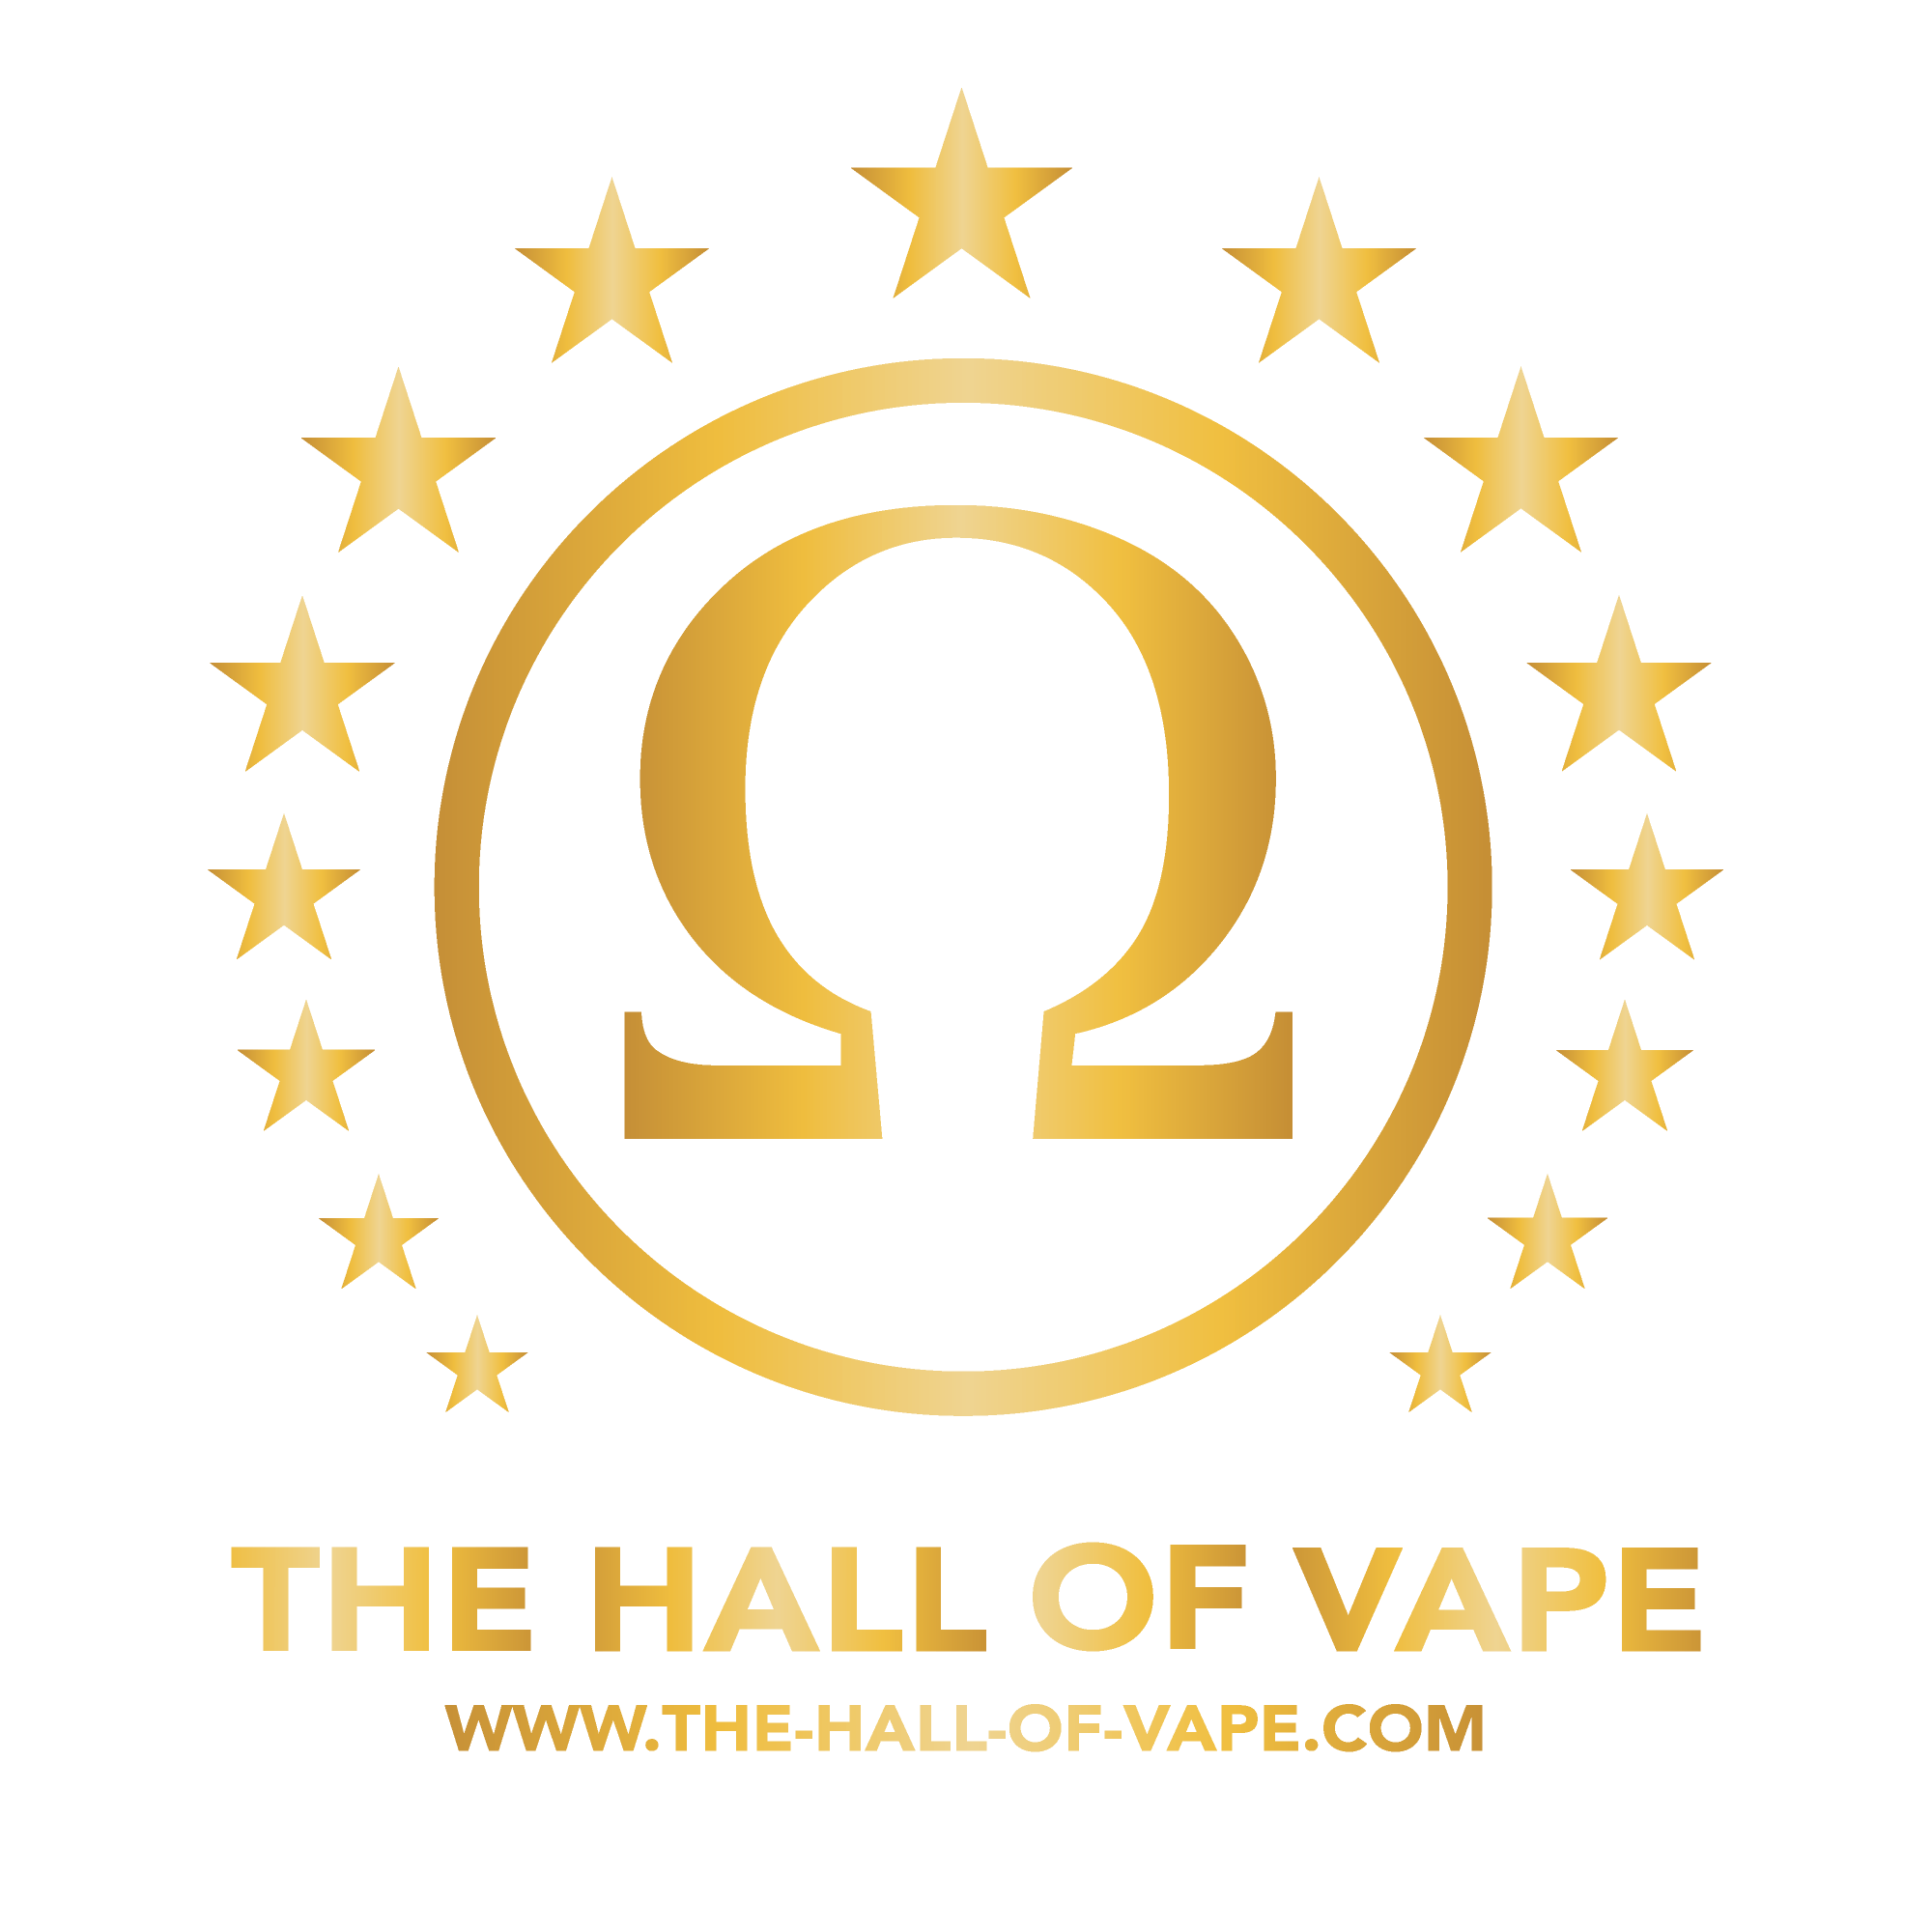 Logo: The Hall of Vape